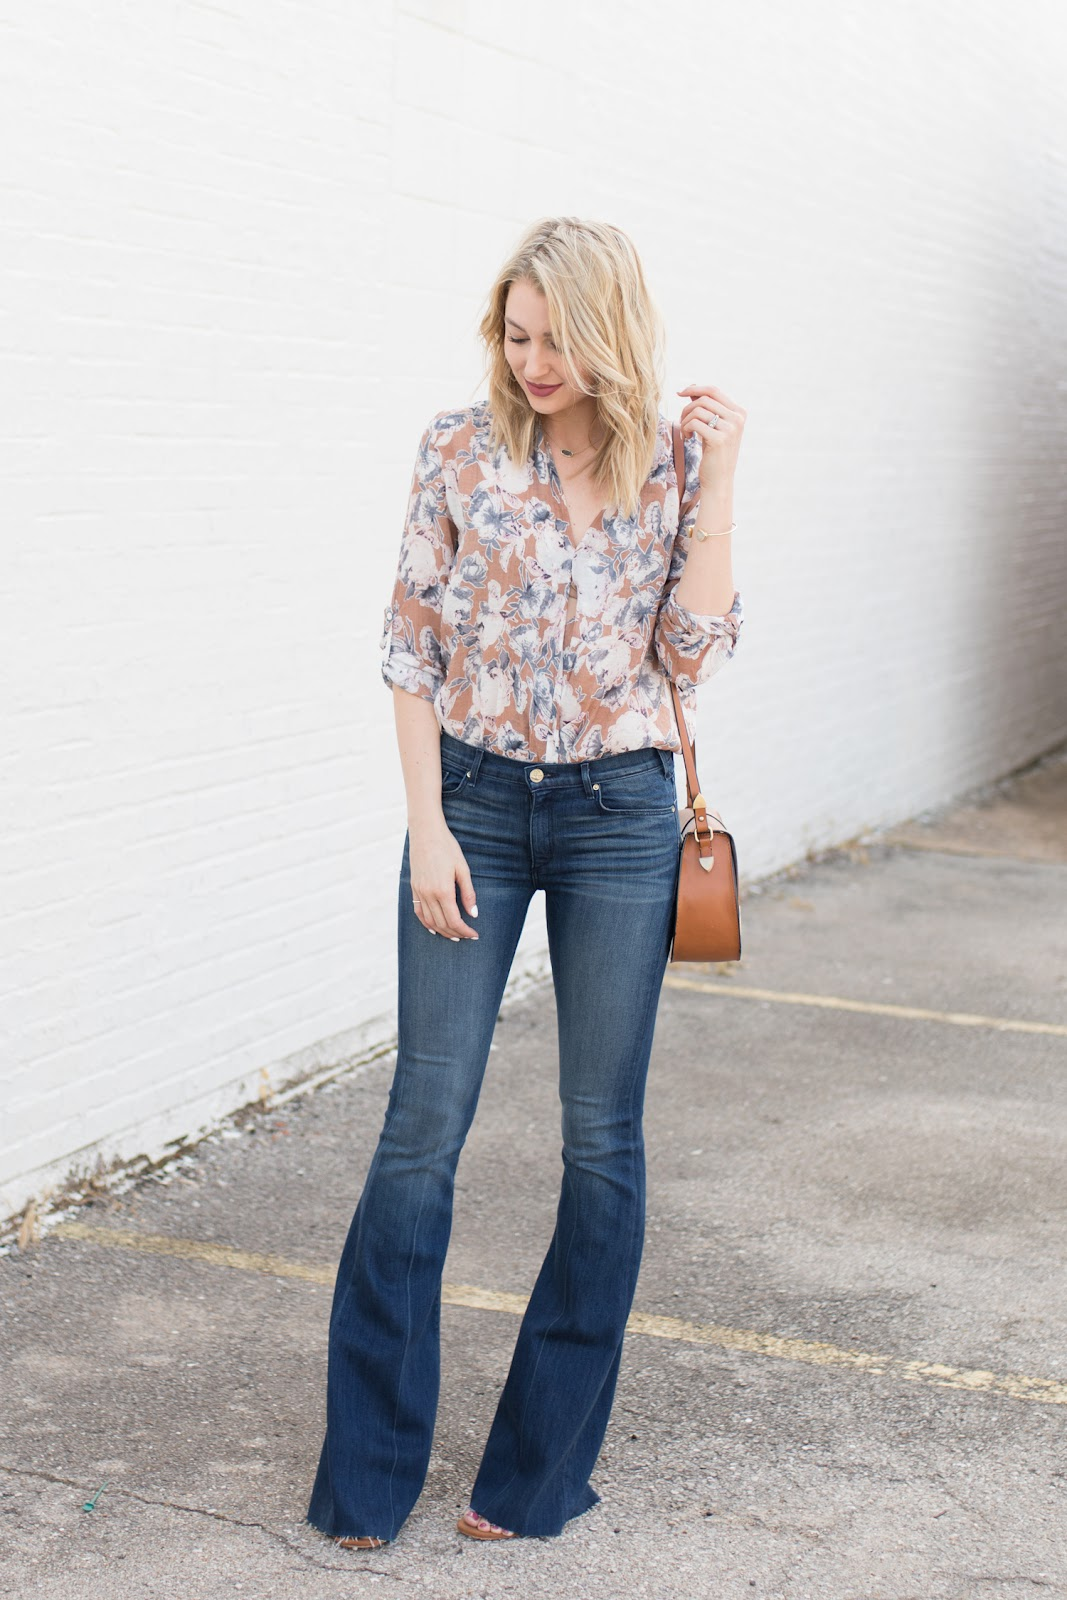 70s inspired flare jeans